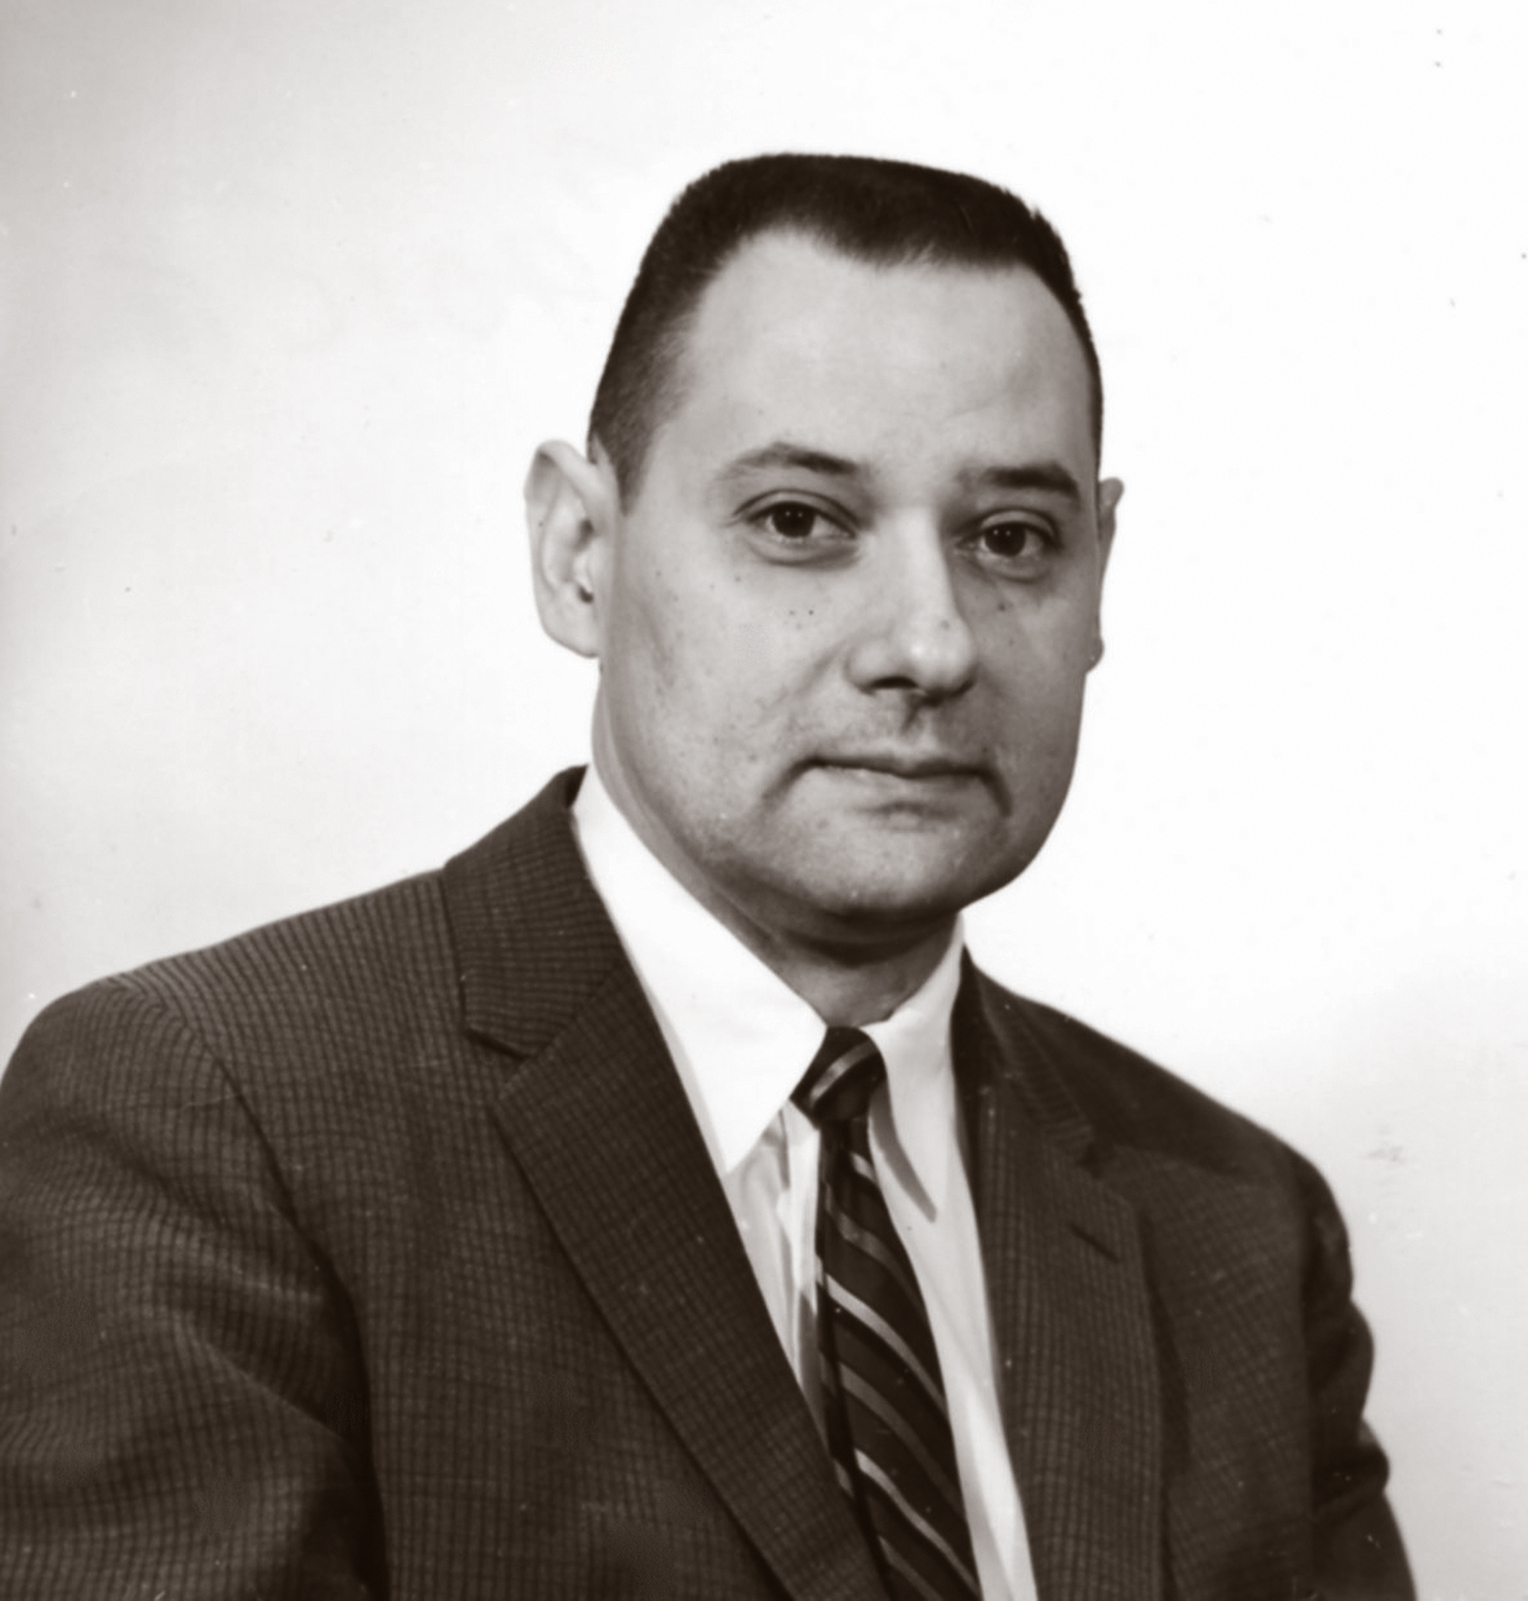 Black and white photo of a man